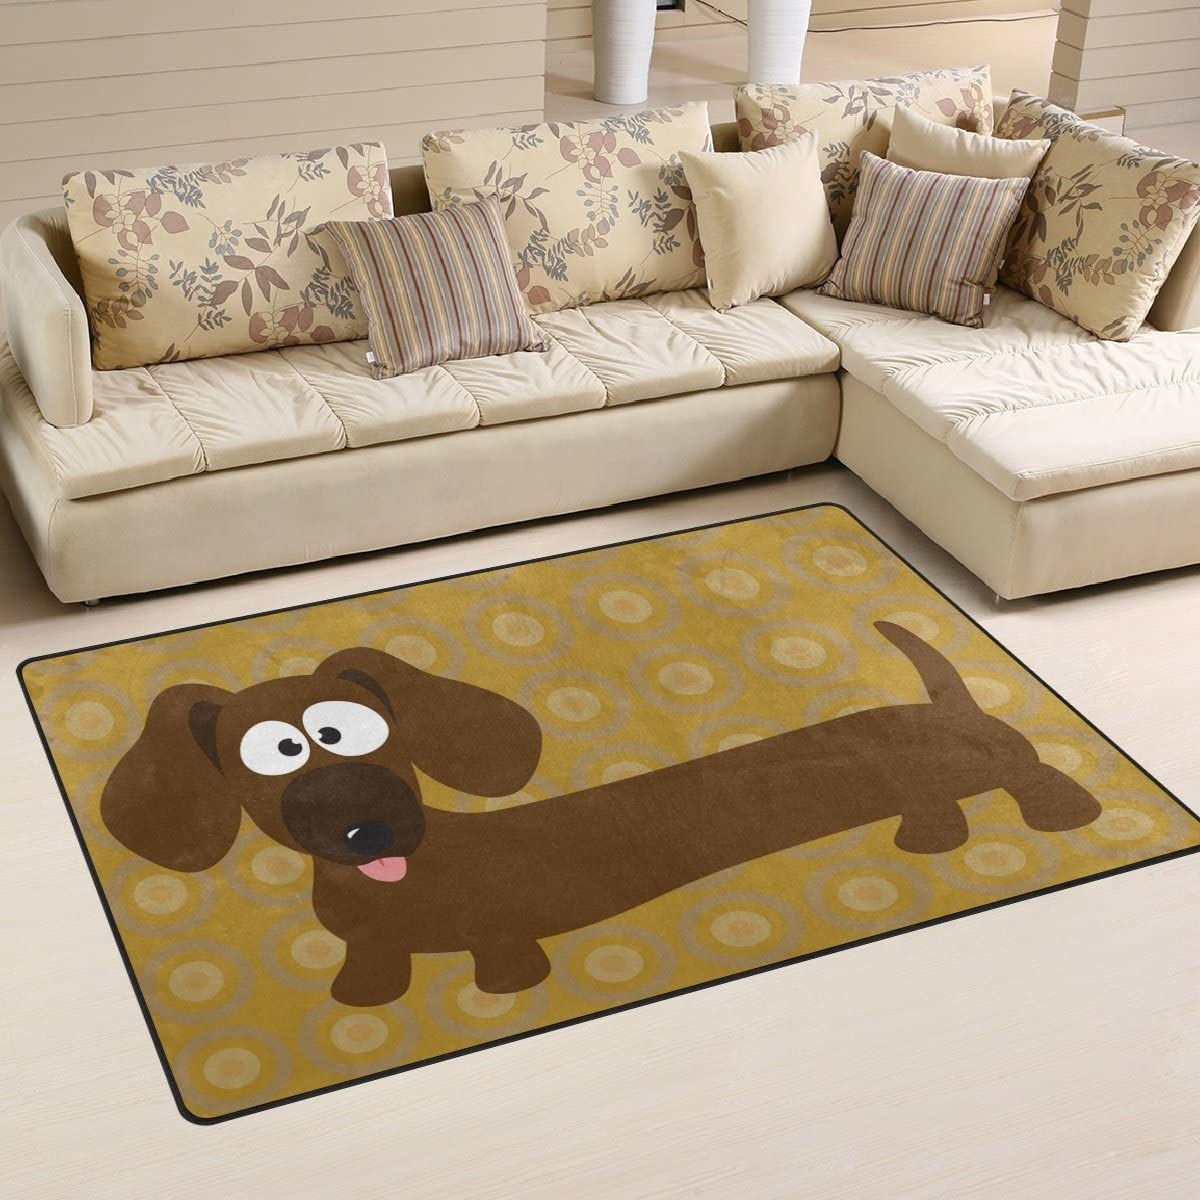 DEYYA Dachshund Hot Dog Memory Foam Area Rug,Modern Floor Rug Carpet